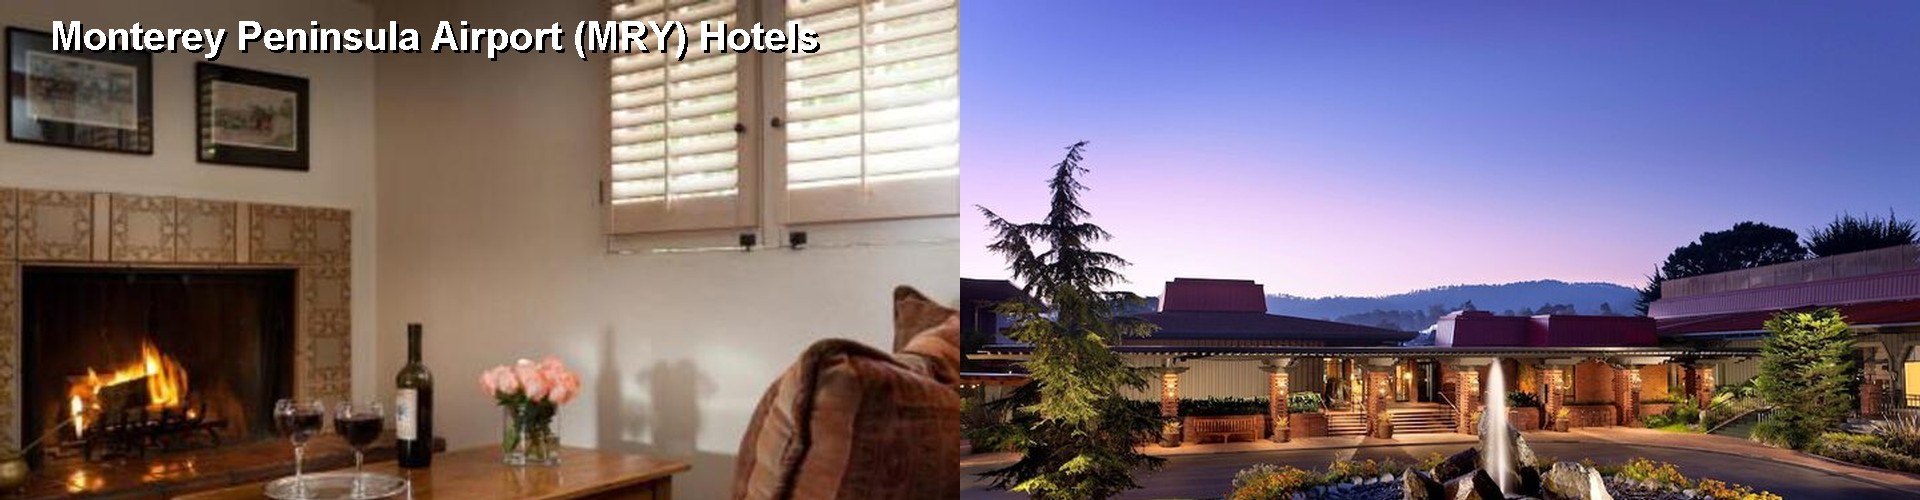 5 Best Hotels near Monterey Peninsula Airport (MRY)